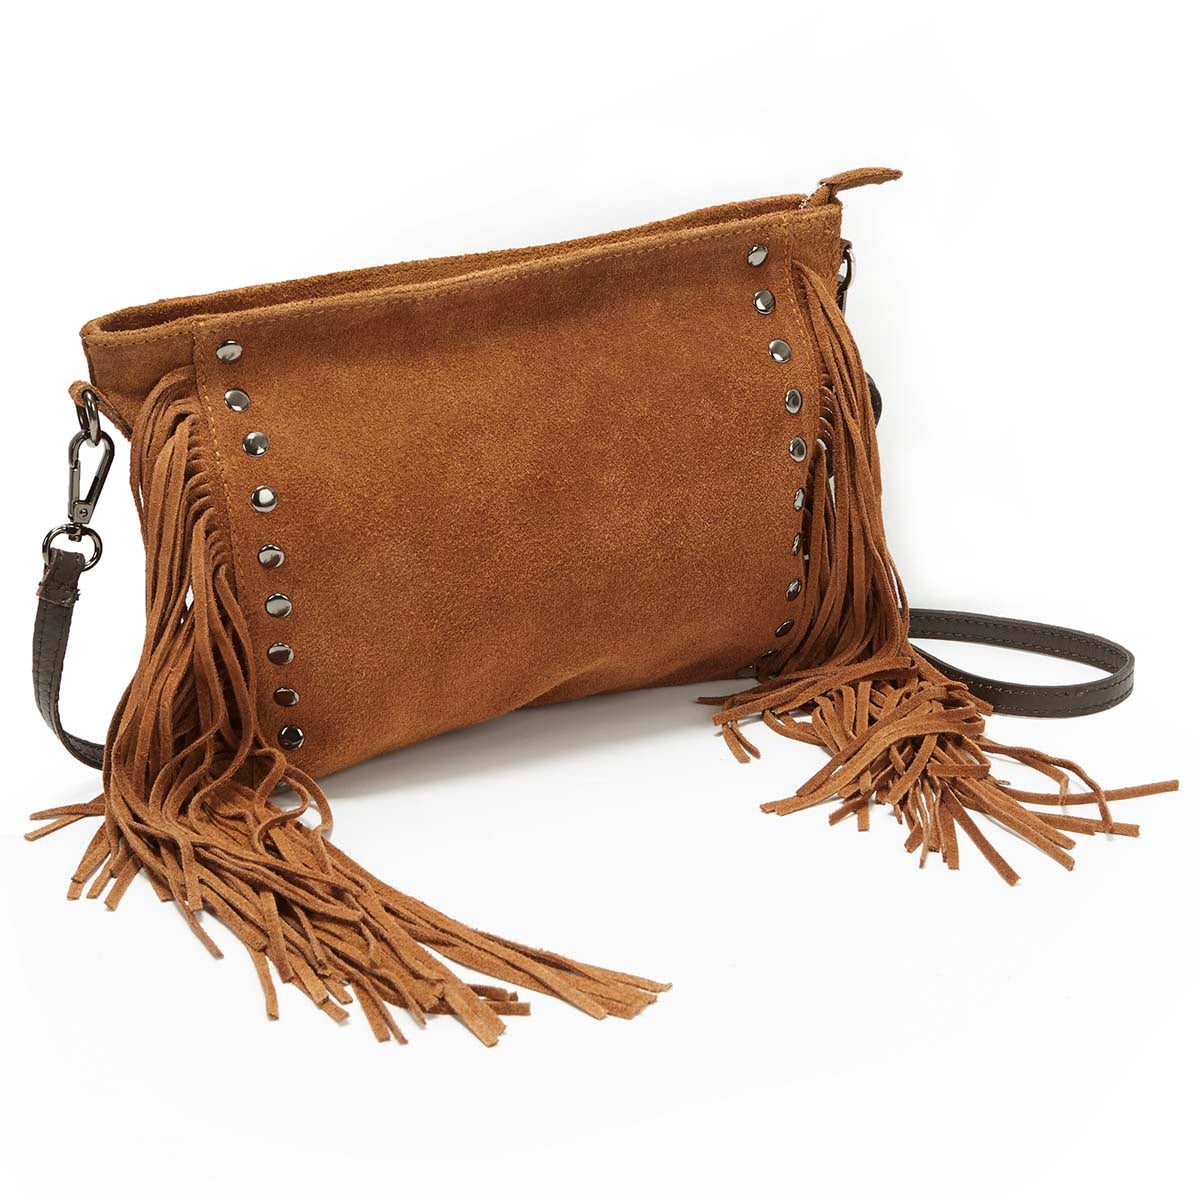 Lds brown studded fringe handbag